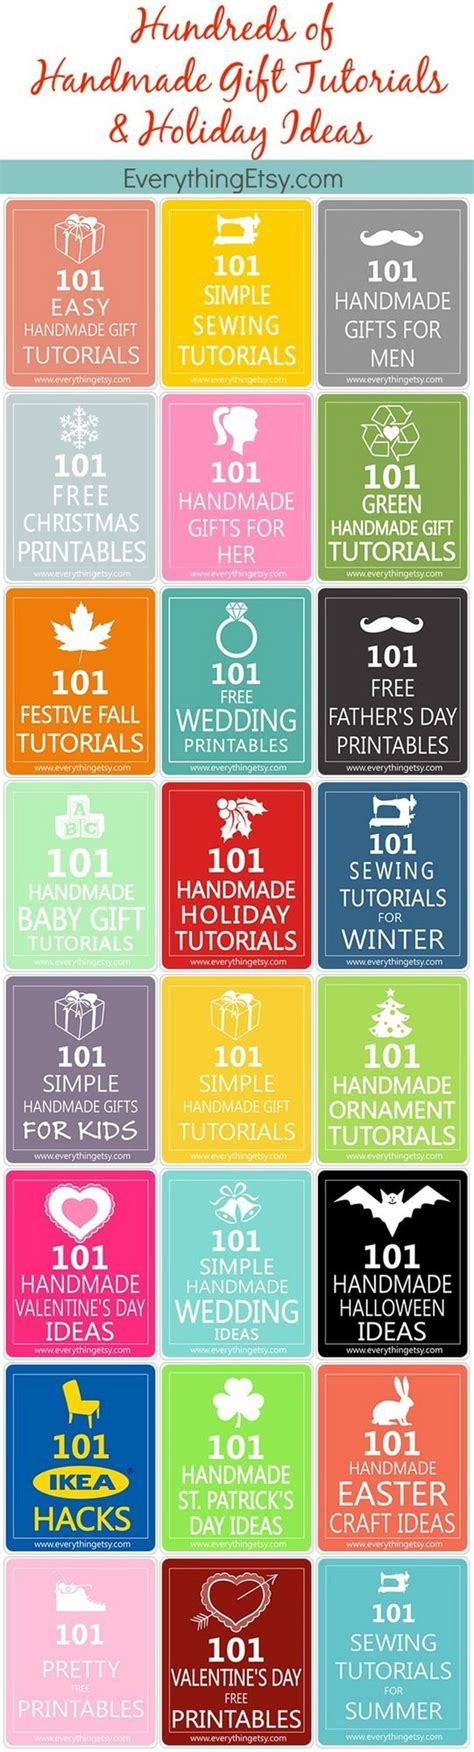 Handmade Gifts Tutorials - handmade gifts tutorials ideas hundreds of them